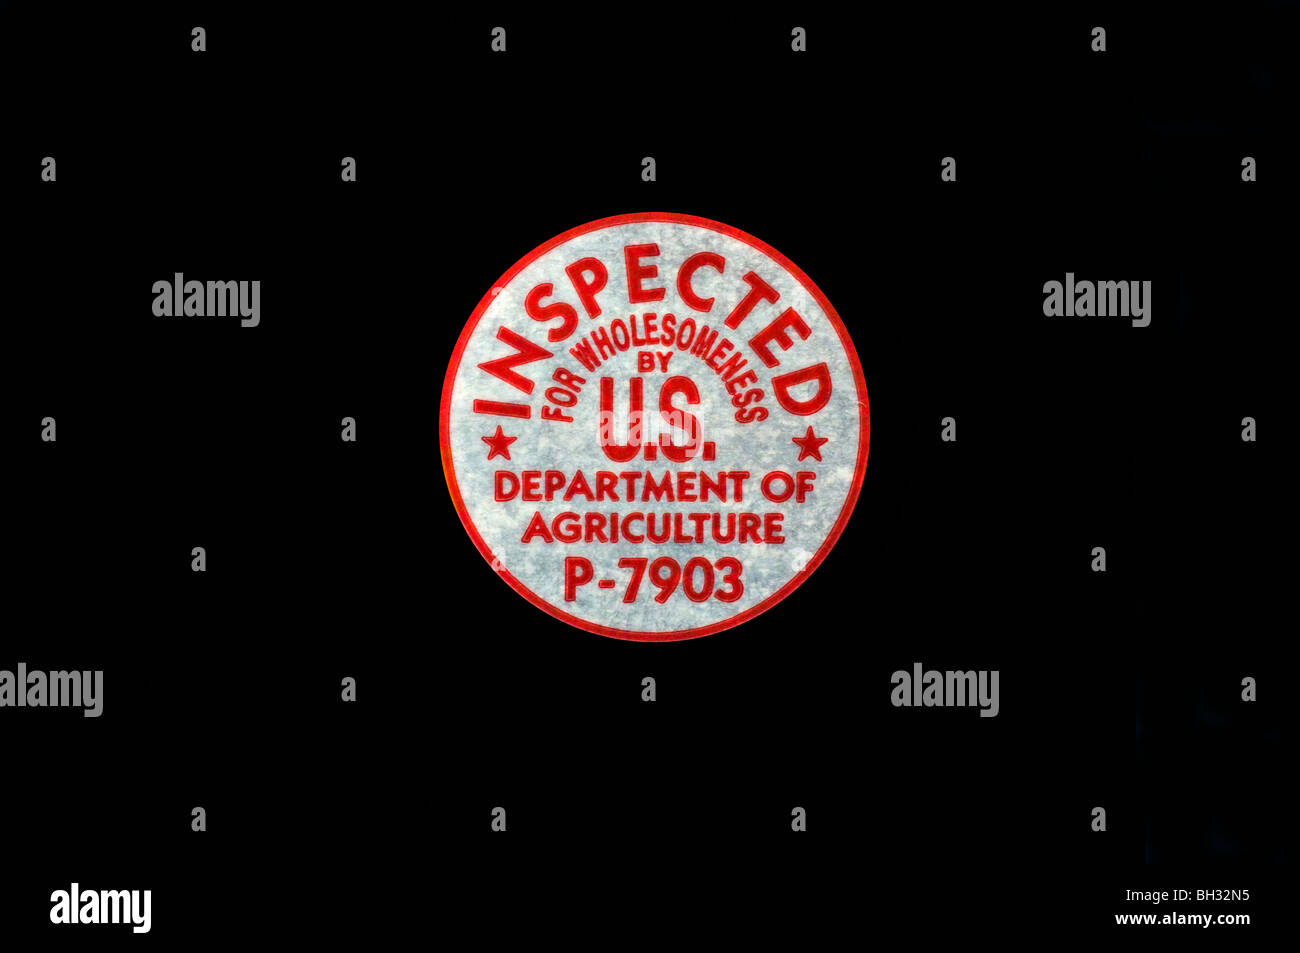 Cut Out. U.S. Dept. of Agriculture Wholesomeness Stamp (P-7903) on black background. - Stock Image